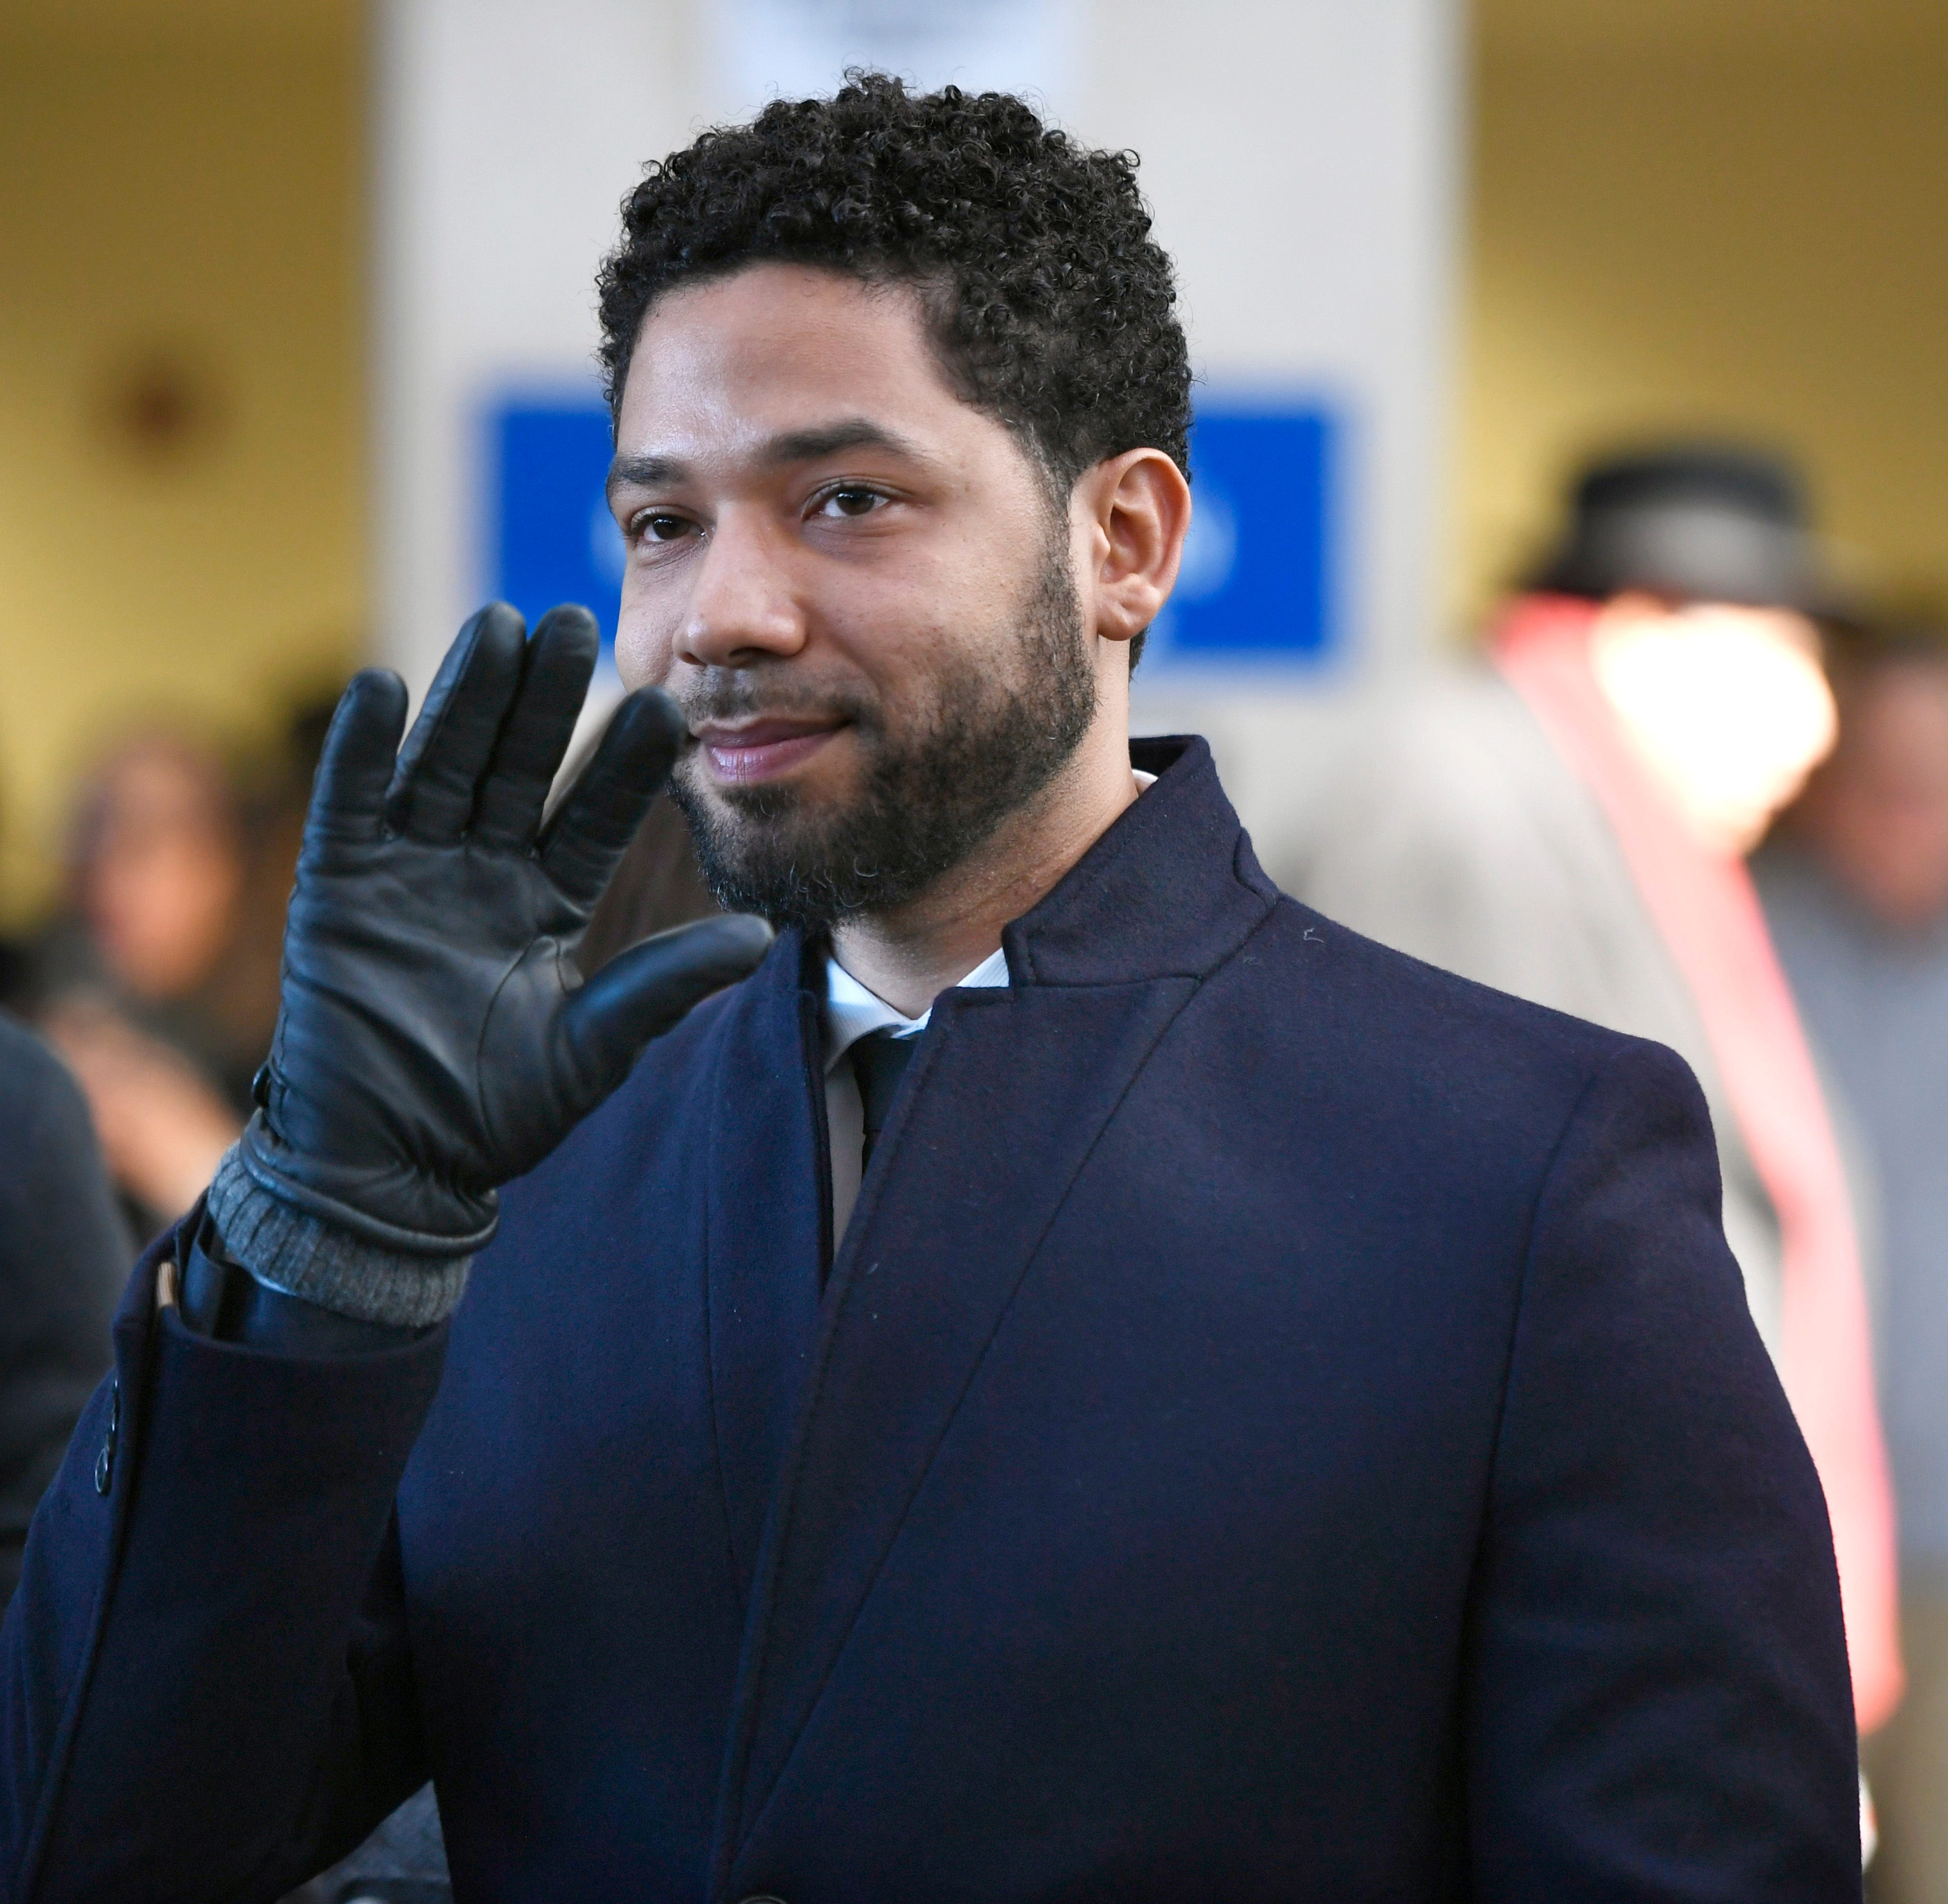 Actor Jussie Smollett smiles and waves to supporters before leaving Cook County Court after his charges were dropped Tuesday, March 26, 2019, in Chicago.